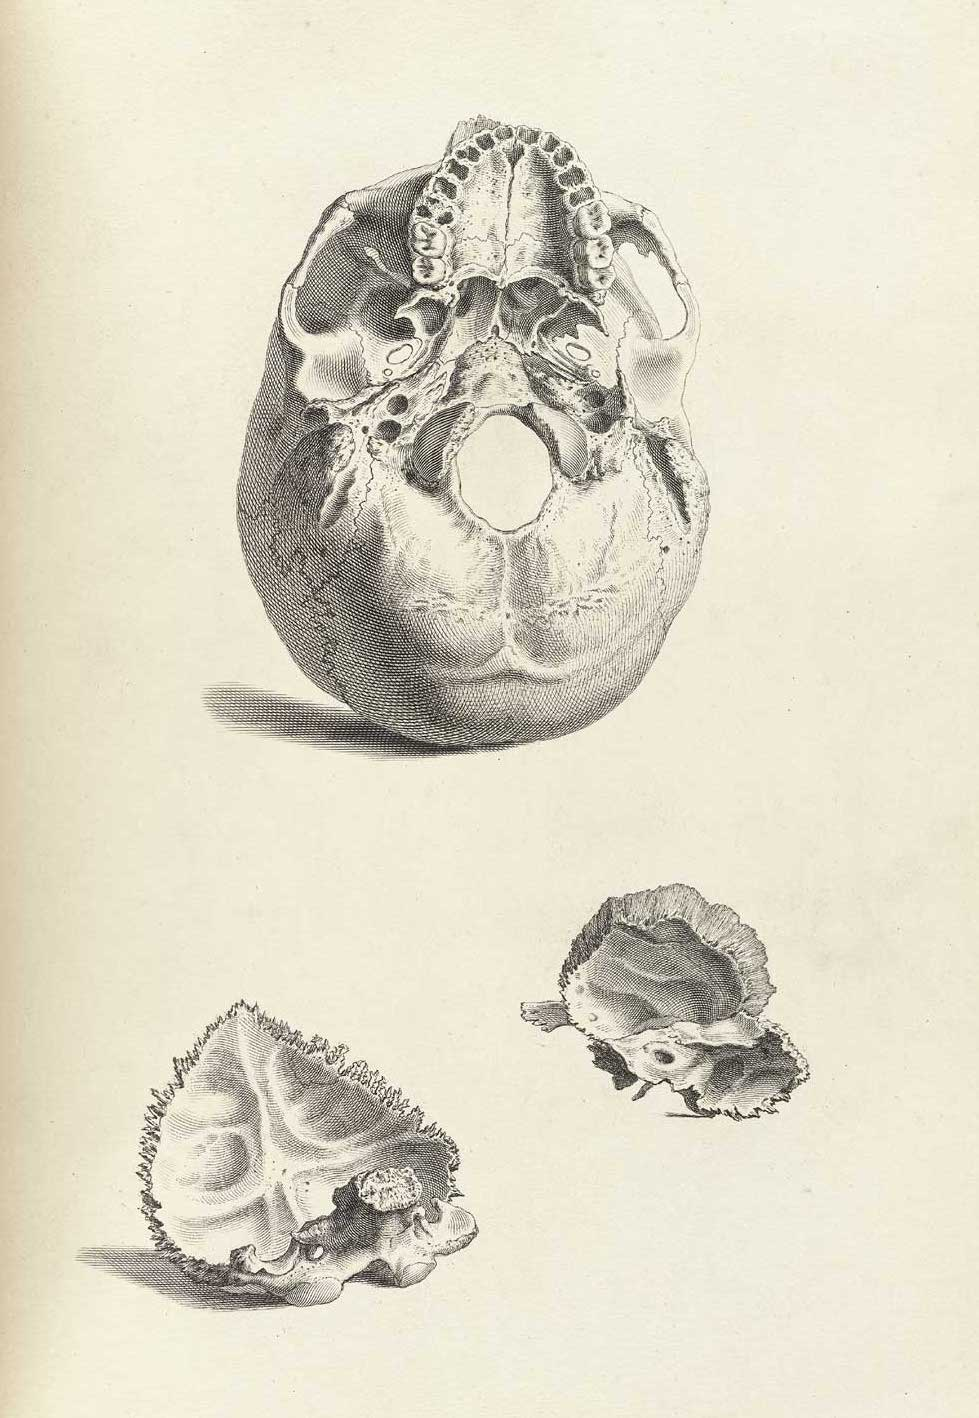 Illustrations sourced from Tabulae Osteologicae by Christoph Jacob Trew